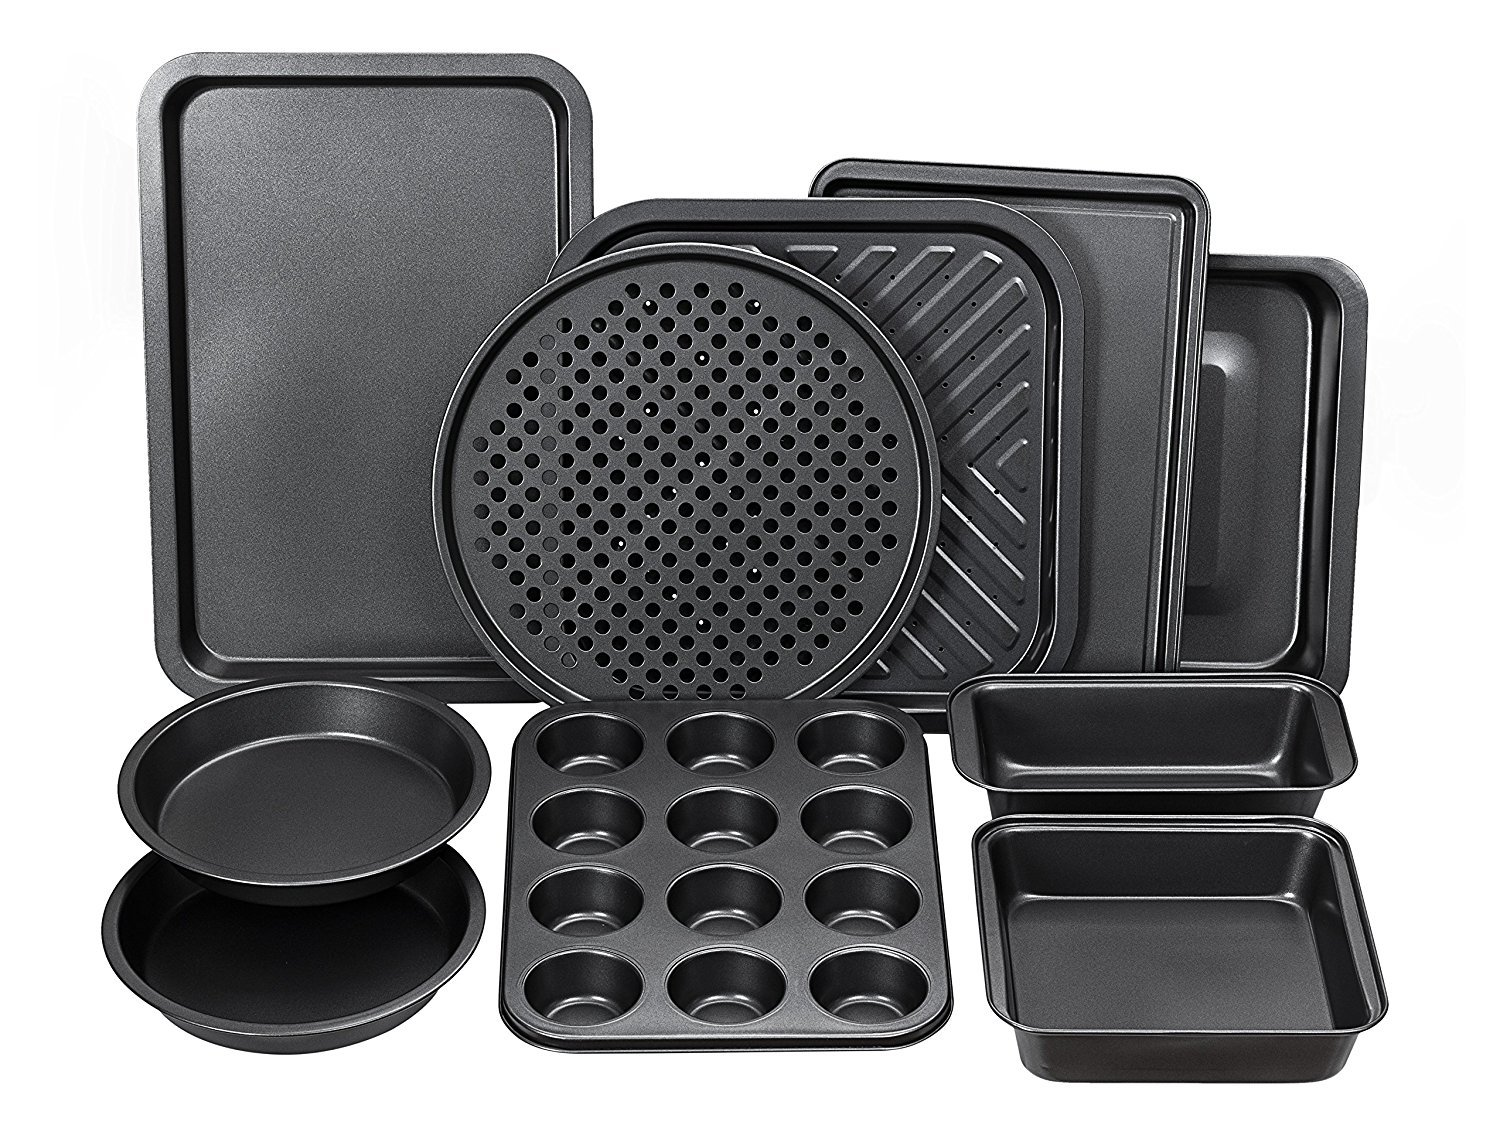 Perlli Complete Bakeware Set 10-Piece Non-Stick, Oven Crisper, Pizza Tray, Roasting, Loaf, Muffin, Square, 2 Round Cake Baking Pans, Large and Medium Nonstick Cookie Sheet Bake Ware for Home Kitchen by Perlli (Image #4)